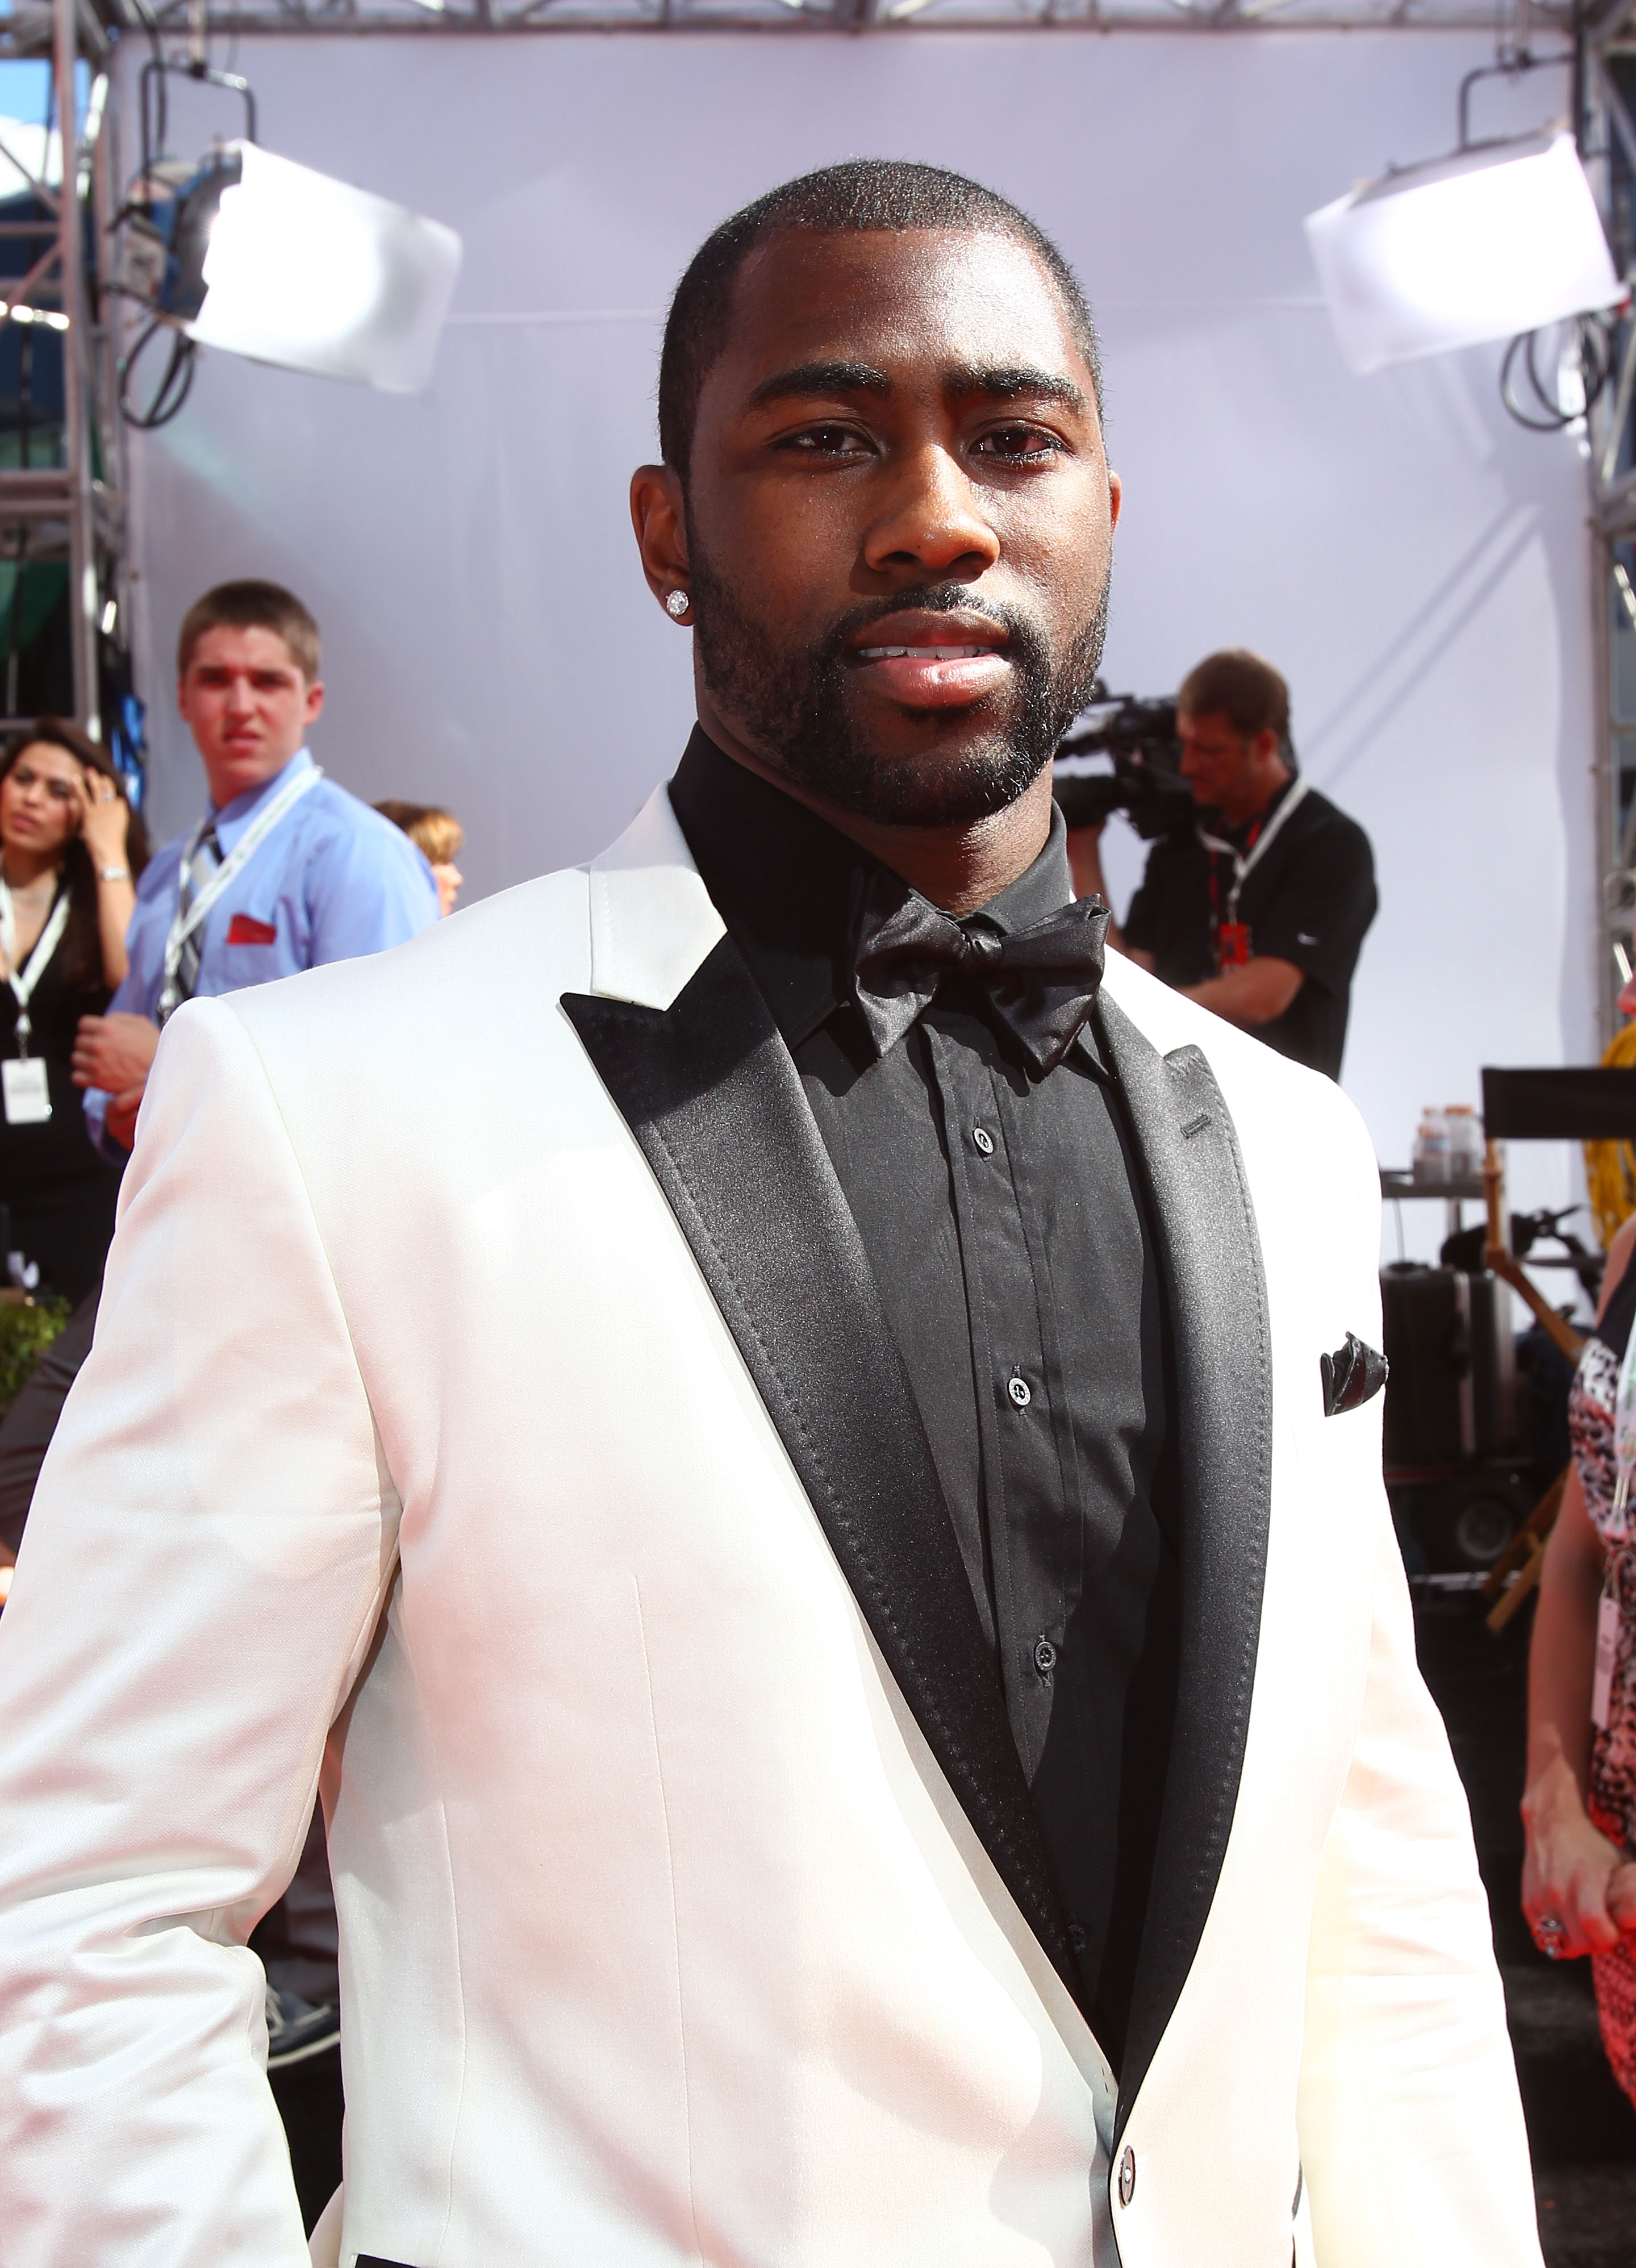 LOS ANGELES, CA - JULY 14:  NFL defensive back  back Darrelle Revis arrives at the 2010 ESPY Awards at Nokia Theatre L.A. Live on July 14, 2010 in Los Angeles, California.  (Photo by Alexandra Wyman/Getty Images for ESPY)